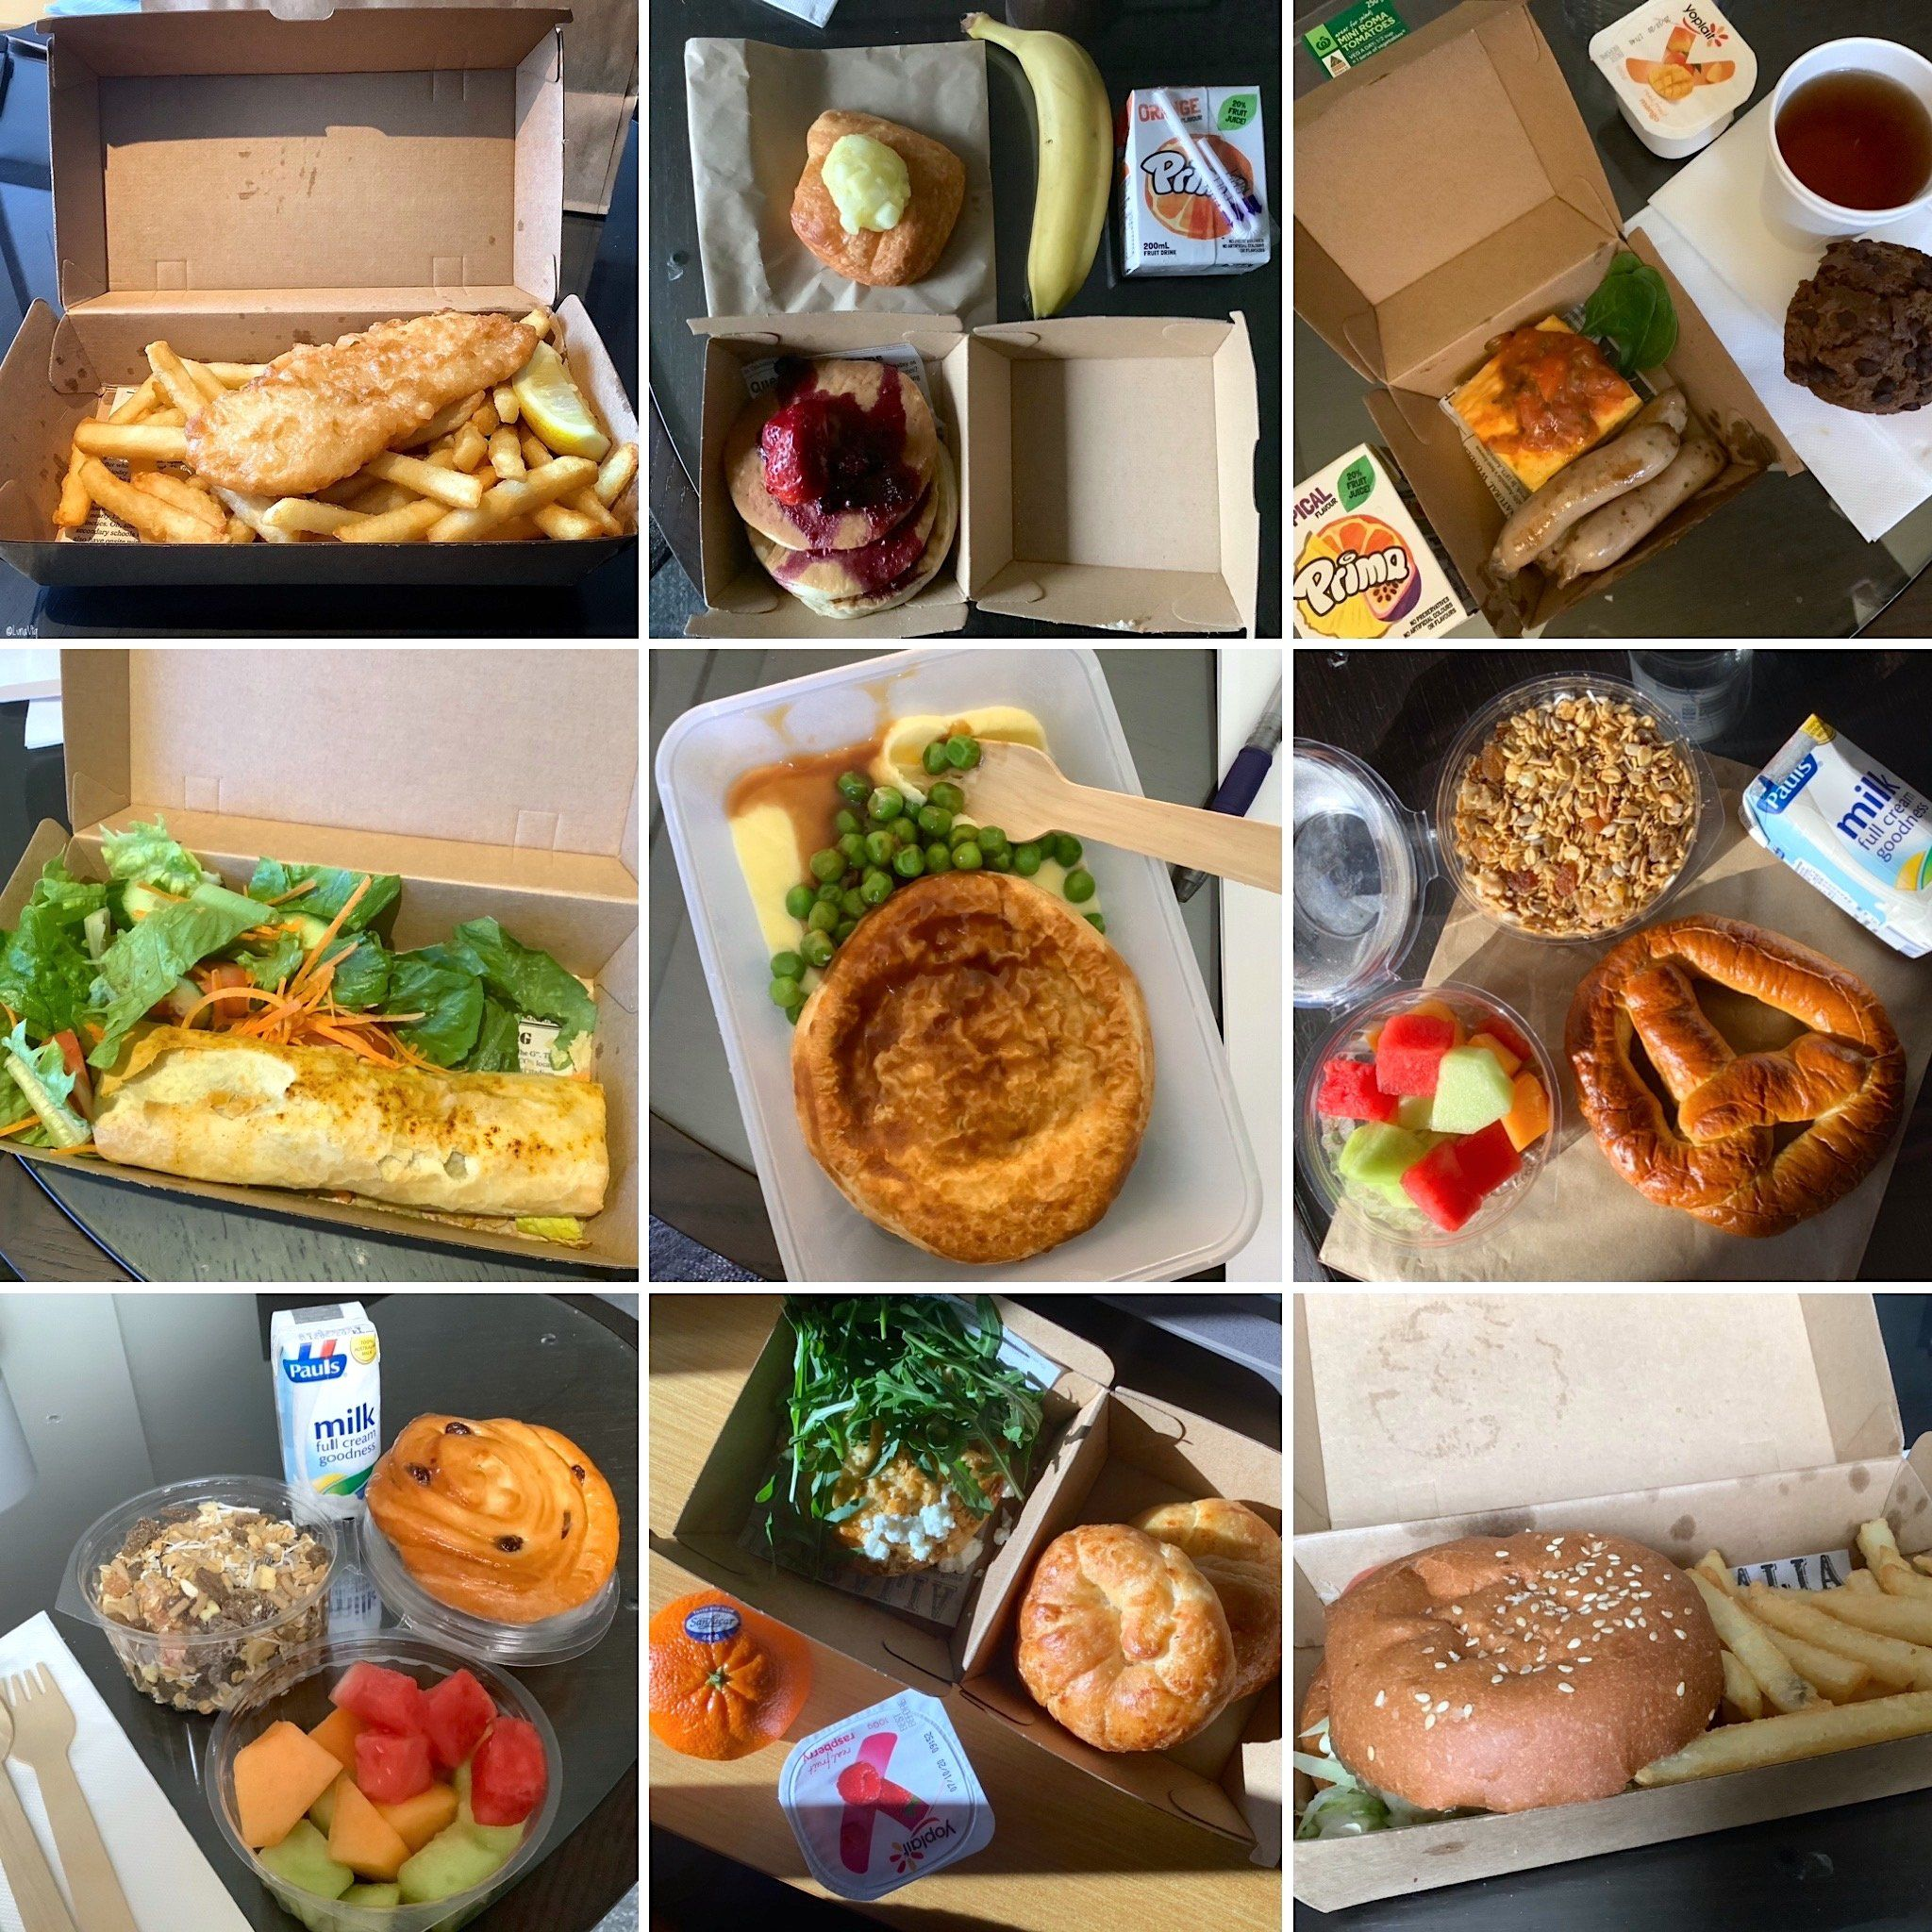 Photographs of food given to Sara Medici when she completed quarantine inside a hotel in Sydney in September 2020